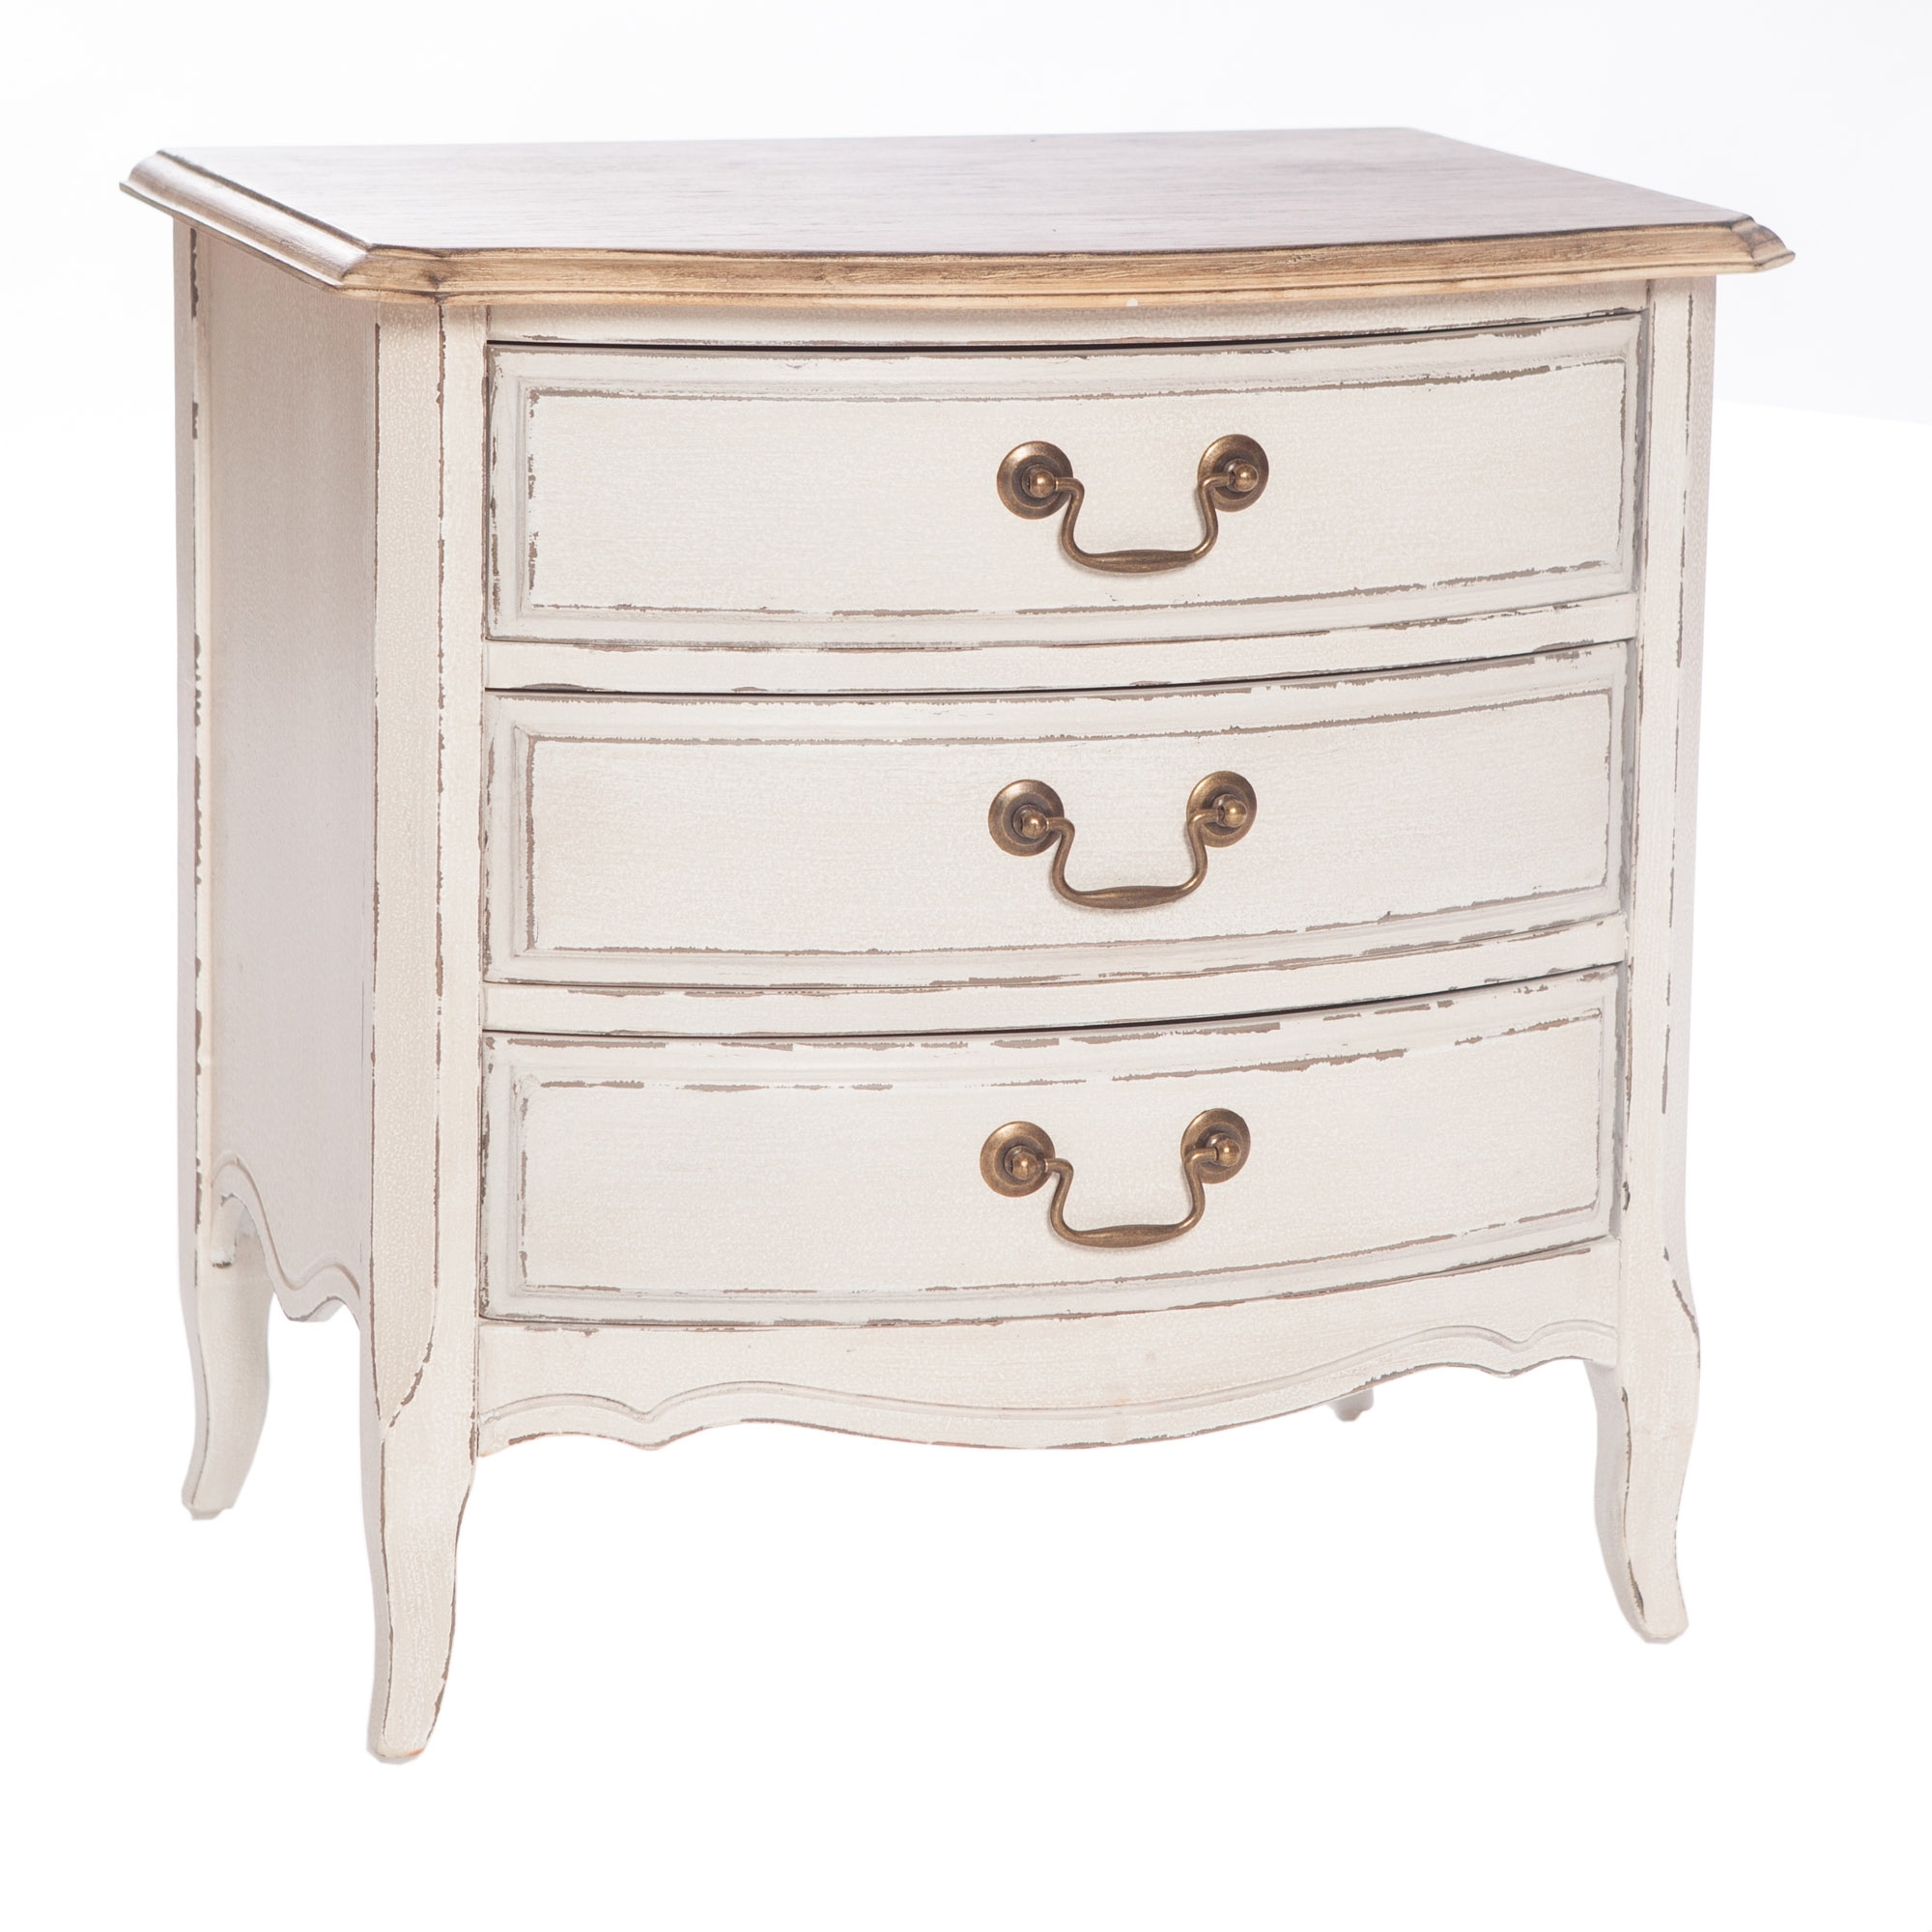 target white top side silver manning brigitte table antique dalton grey drawer bedside eton oak threshold console gloss wood tables hugo chest preusser storage small end hafley